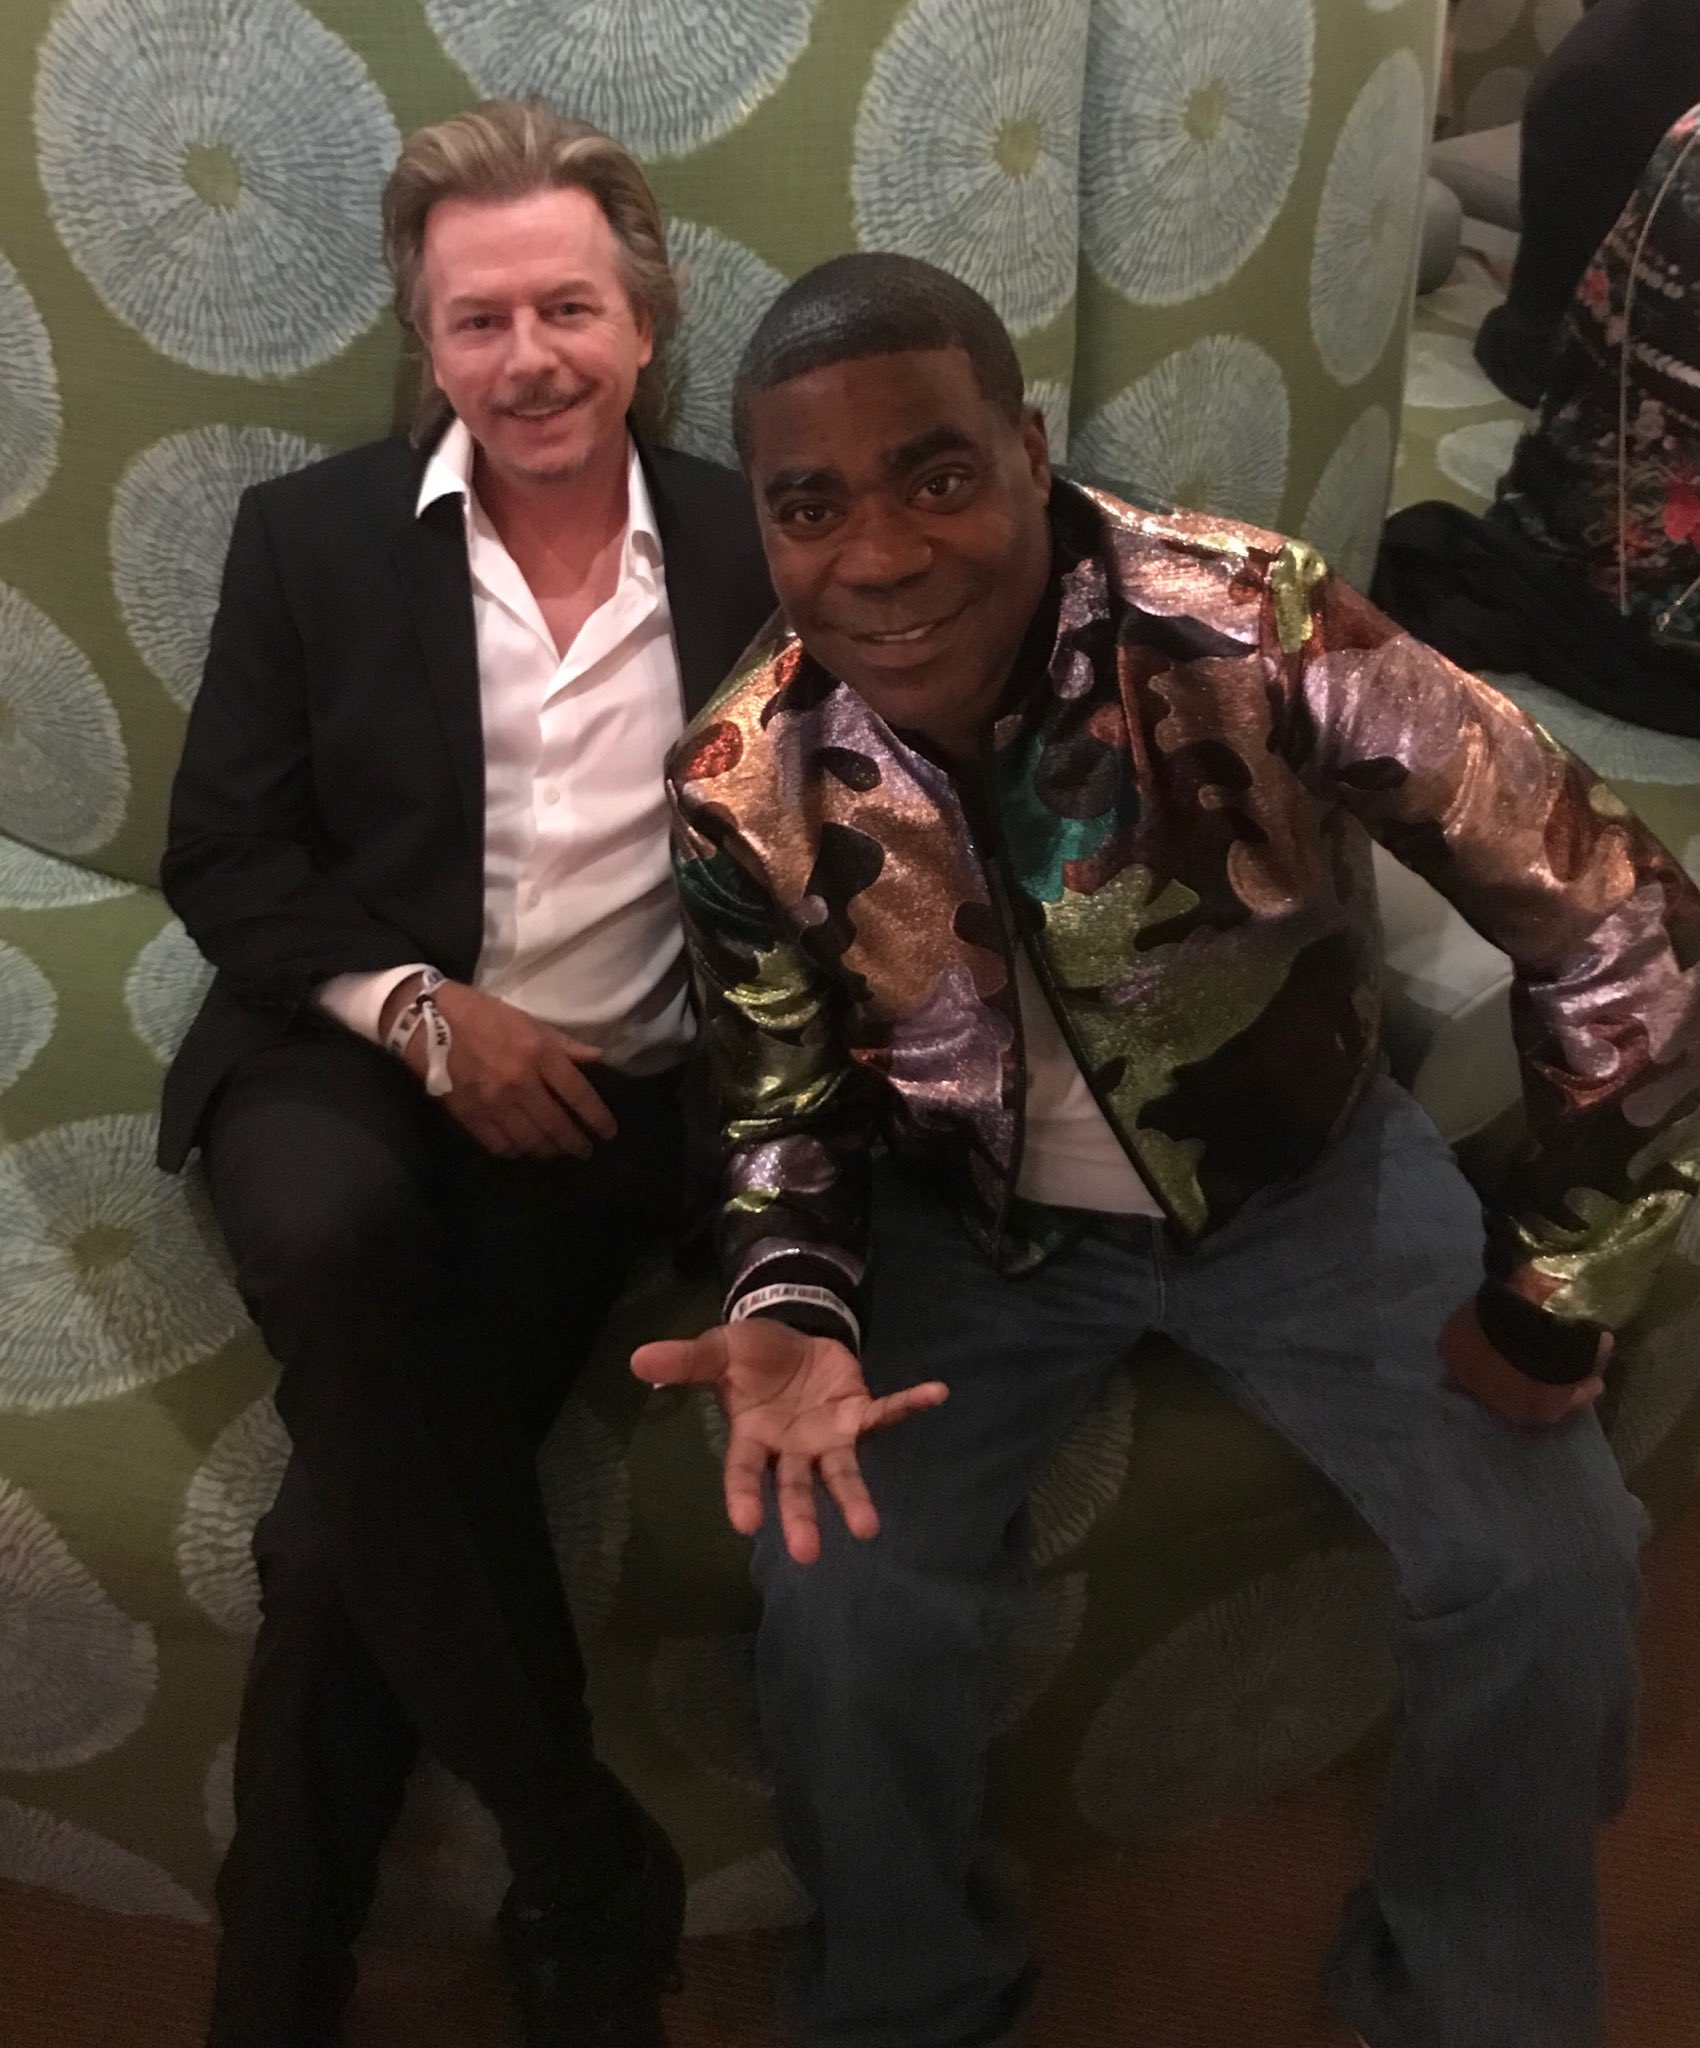 This guy is always funny to catch up with.  @RealTracyMorgan https://t.co/3pu3tmFCqG